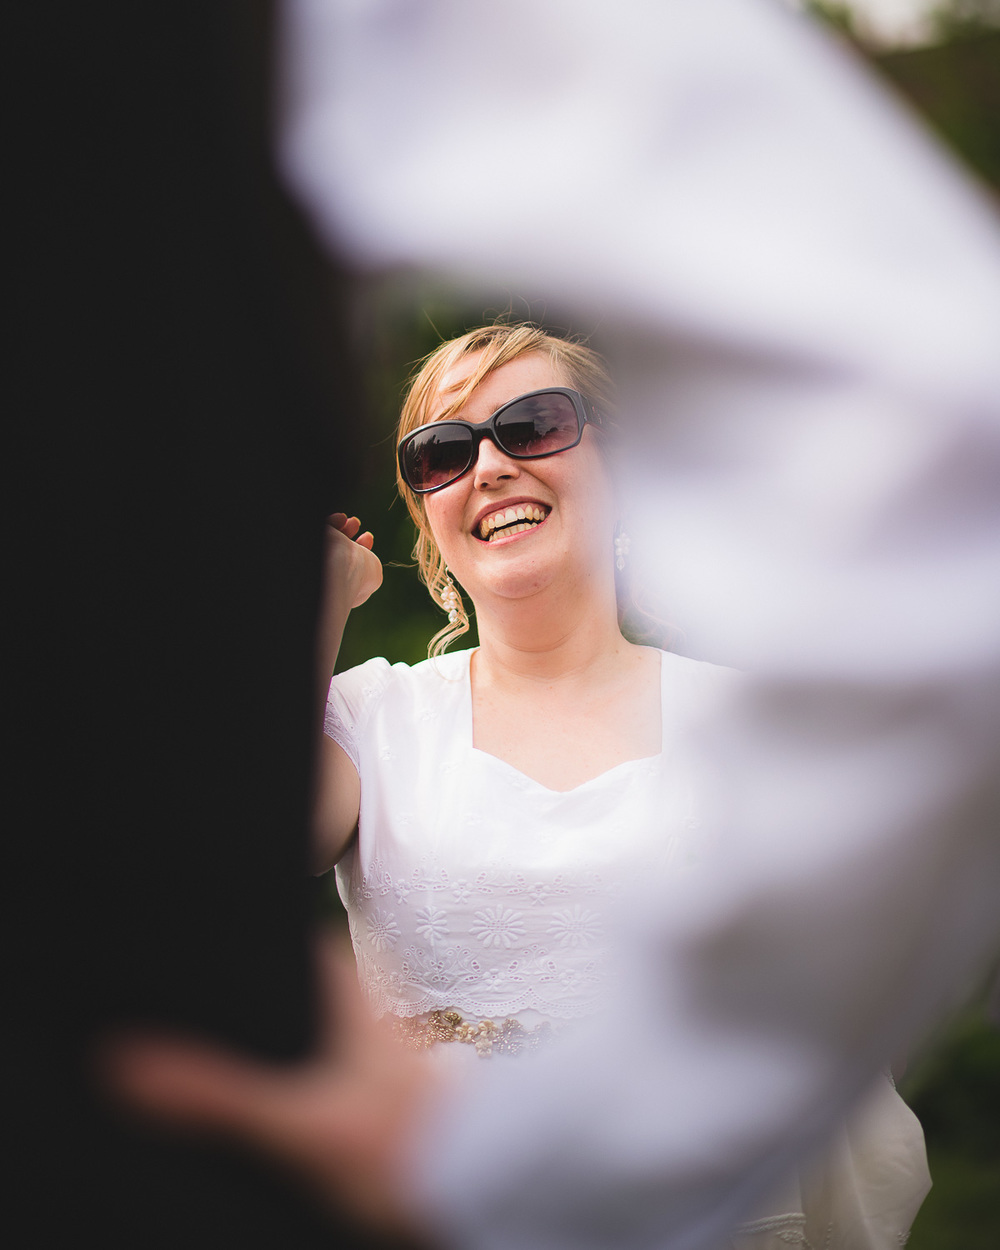 natural-wedding-photographer-bristol-21.jpg